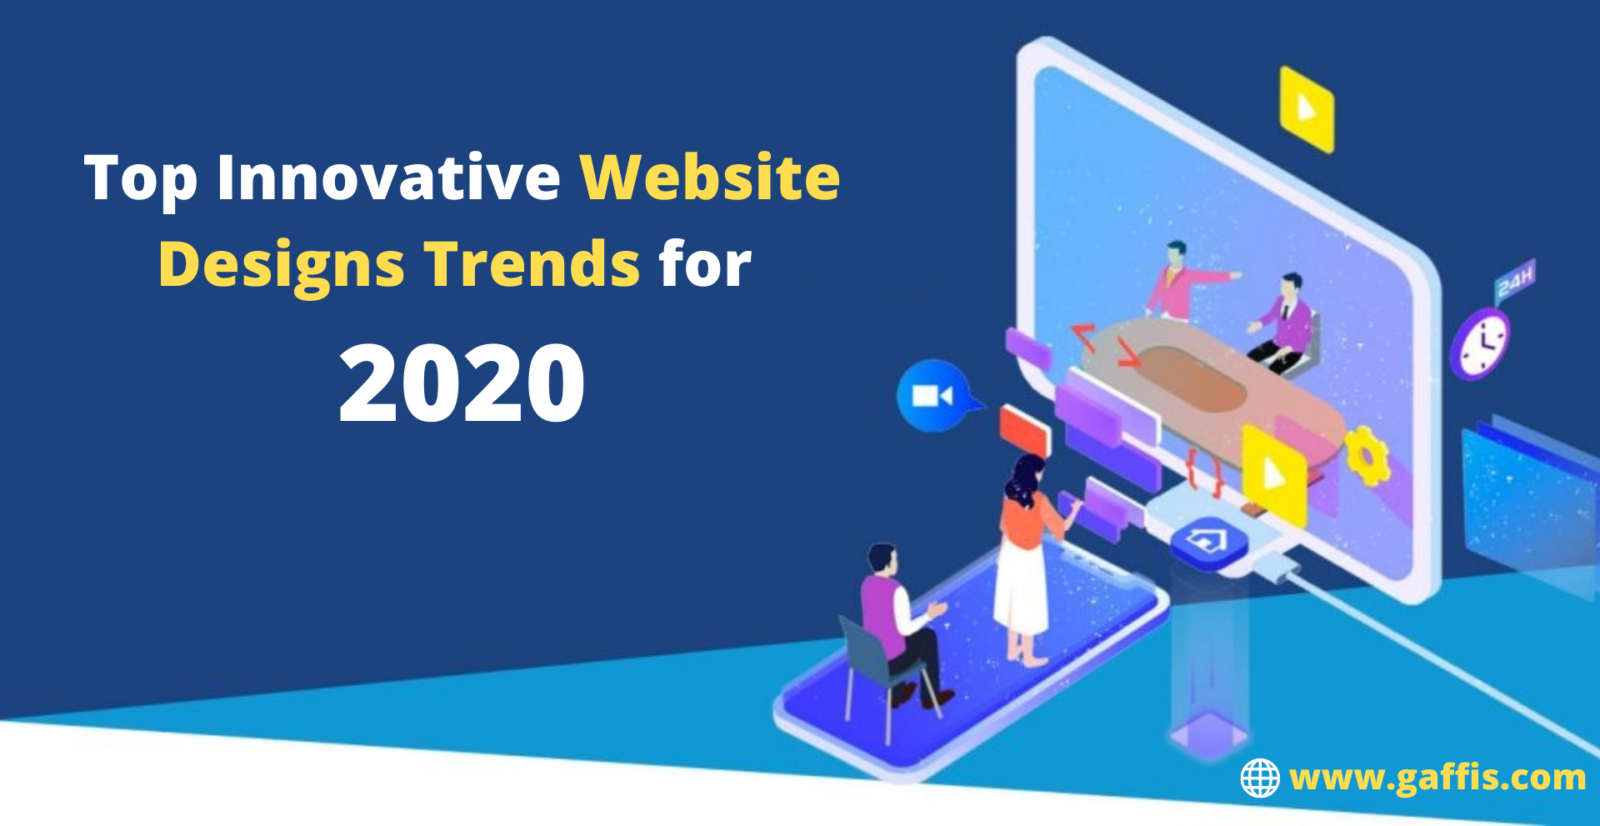 Top Innovative Website Designs Trends for 2020